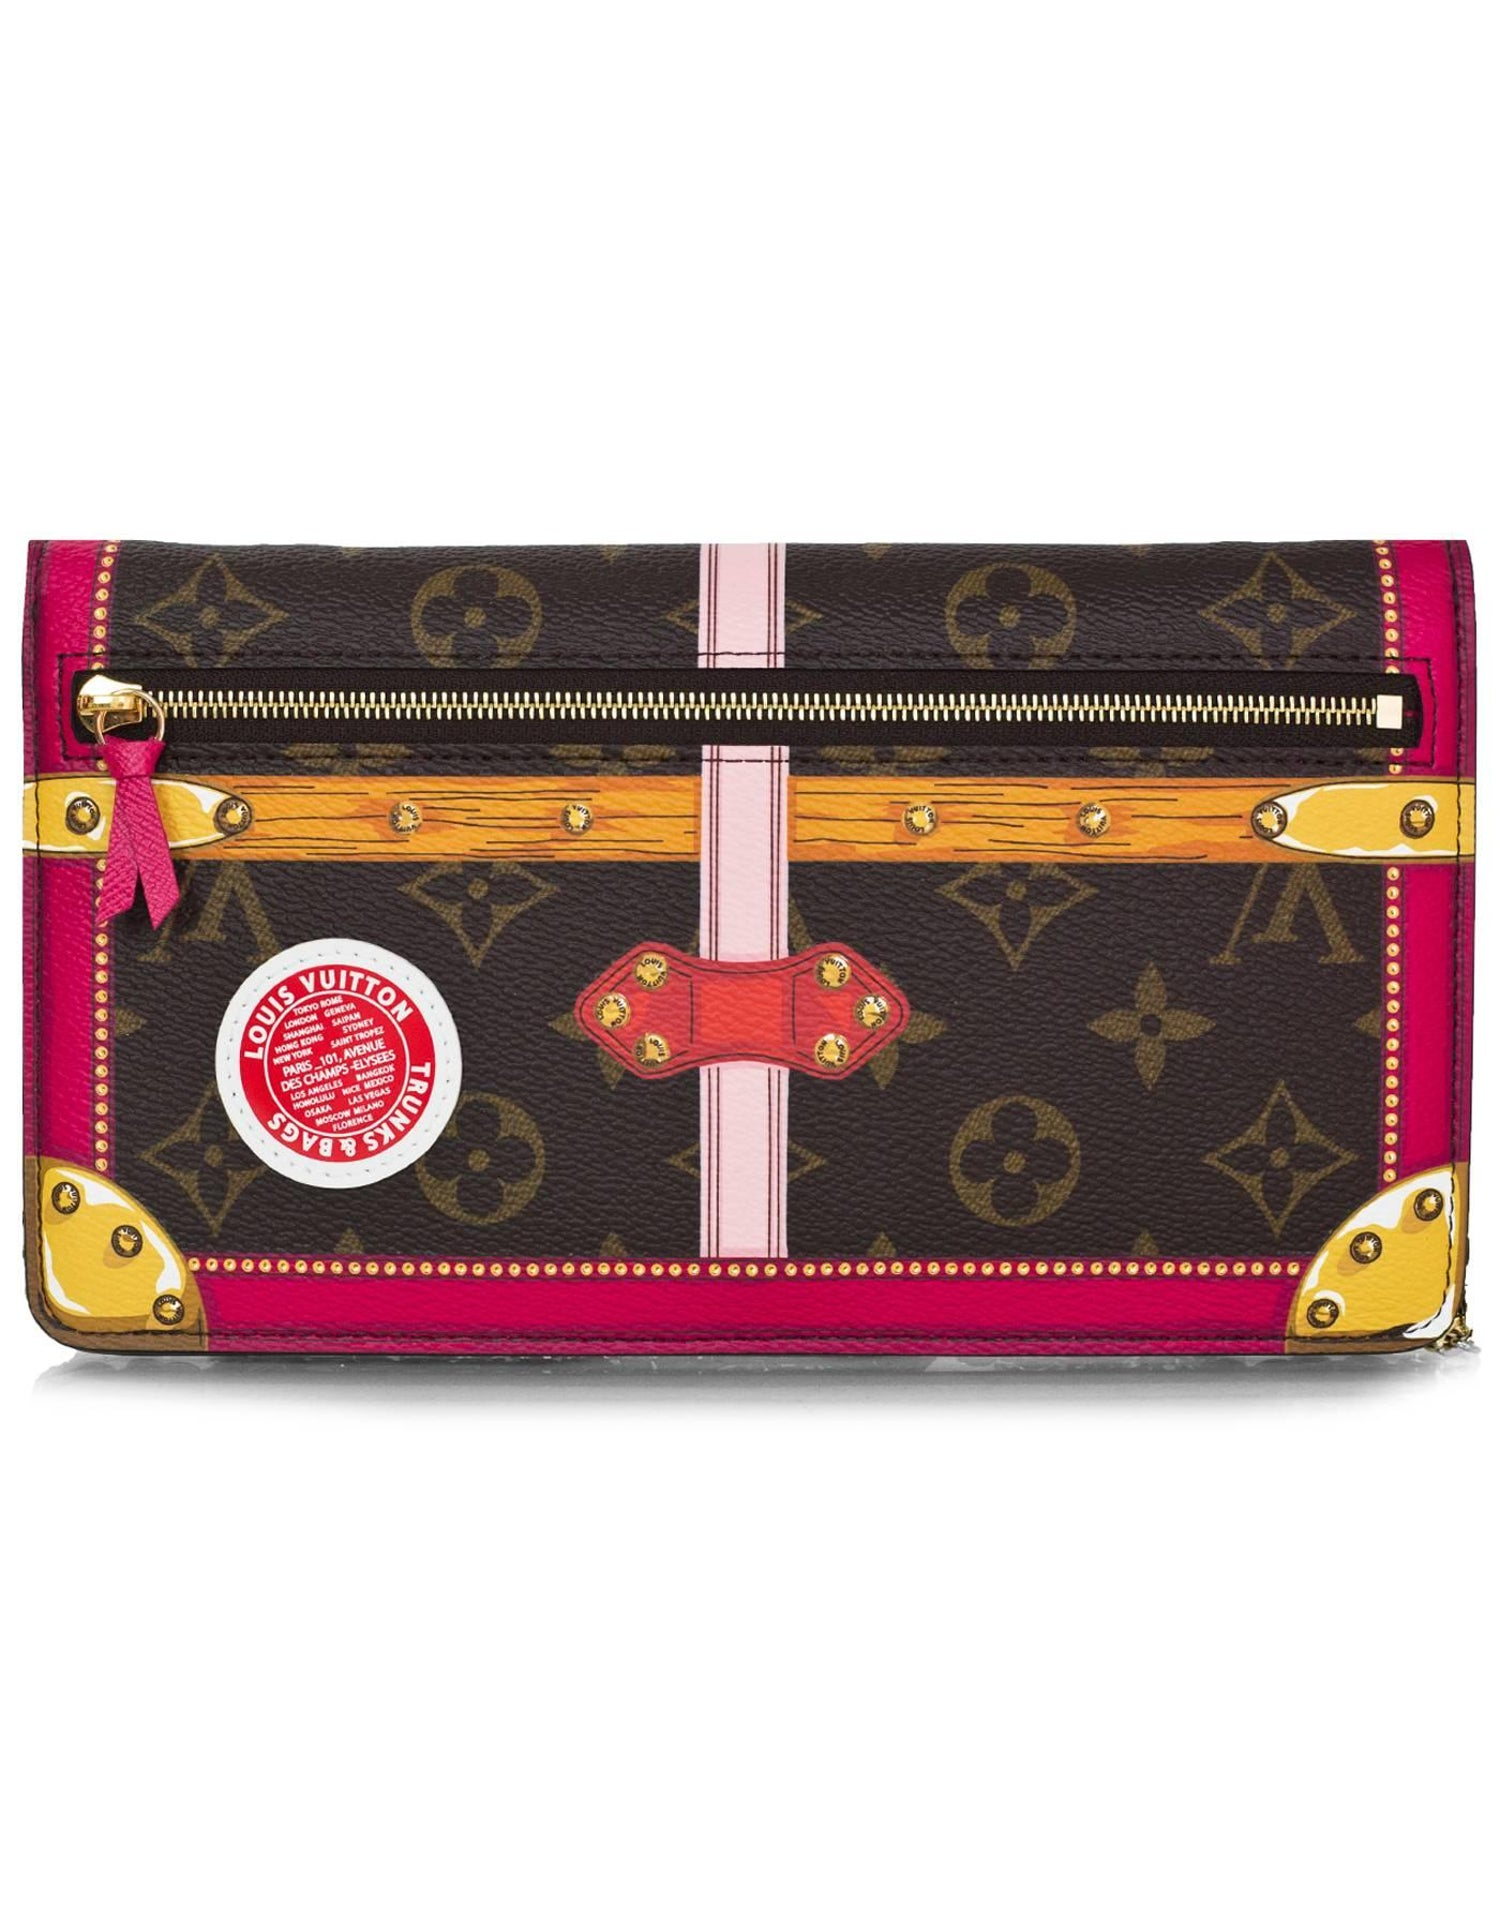 8a2203342fa2 Louis Vuitton 2018 Limited Edition Summer Trunks Pochette Weekend Crossbody  Bag For Sale at 1stdibs